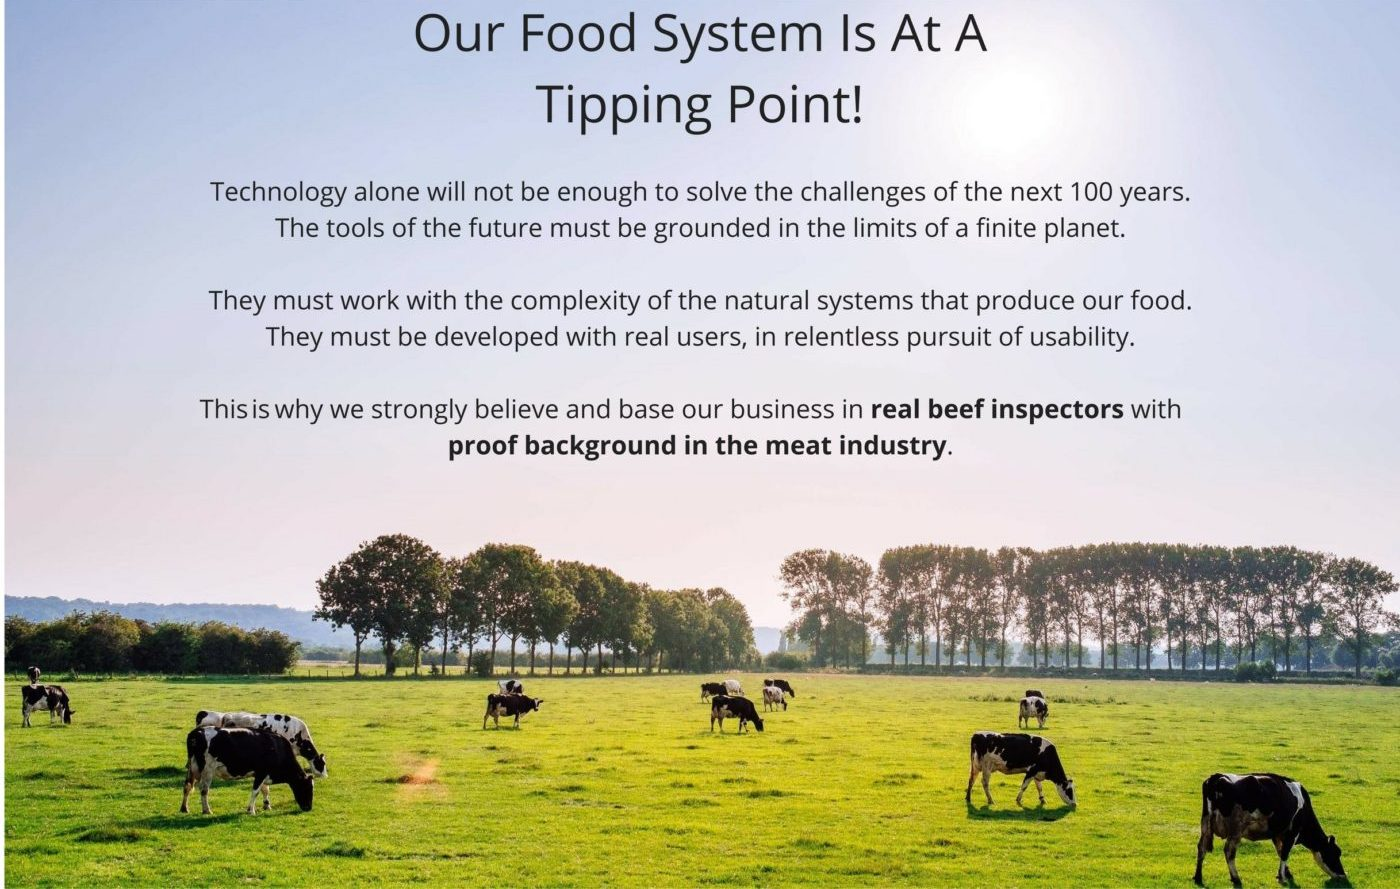 Technology alone will not be enough to solve the challenges of the next 100 years. The tools of the future must be grounded in the limits of a finite planet. They must work with the complexity of the natural systems that produce our food. They must be developed with real users, in relentless pursuit of usability. This why we strongly believe and base our business in real beef inspectors with proof background in the meat industry.